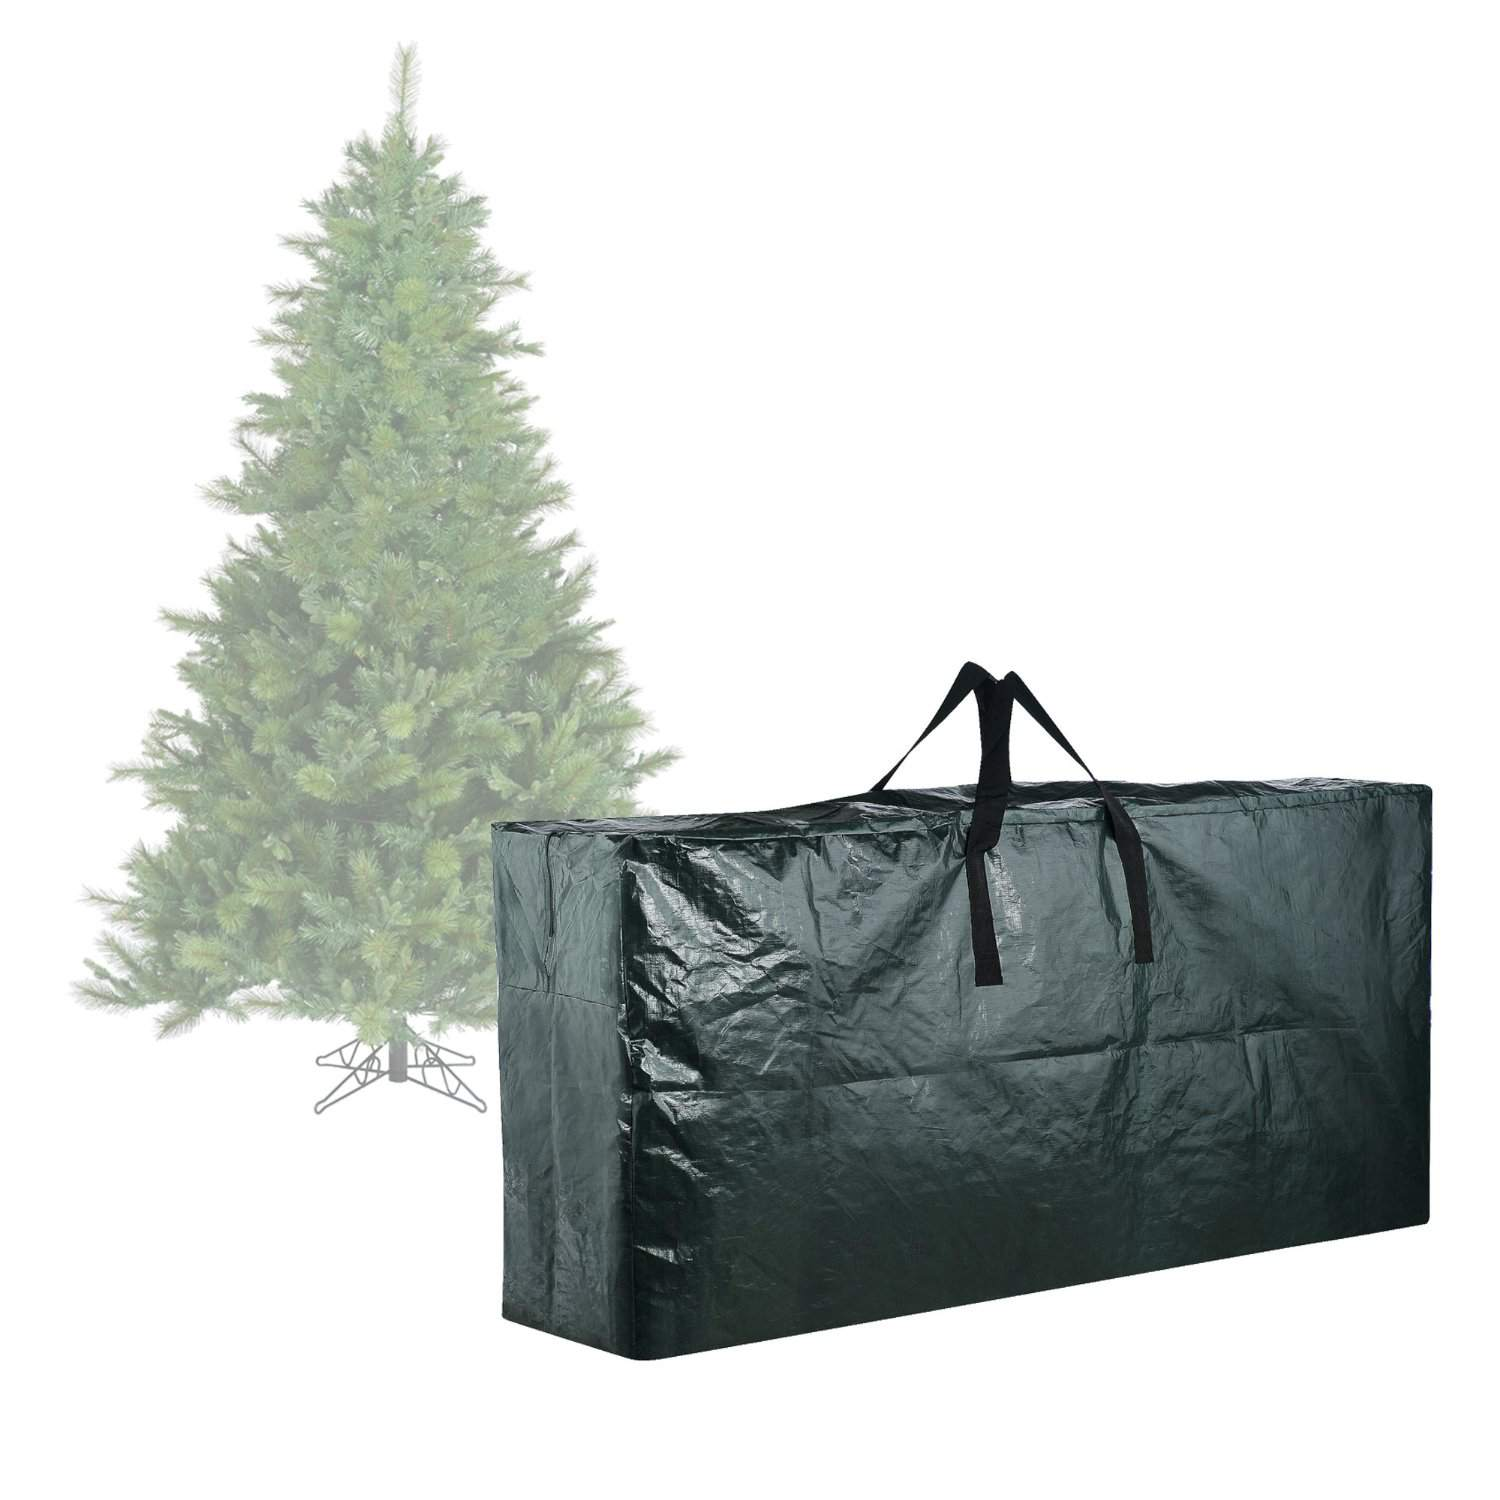 Large Christmas Tree: 6 Storage Solutions For Your Artificial Christmas Tree